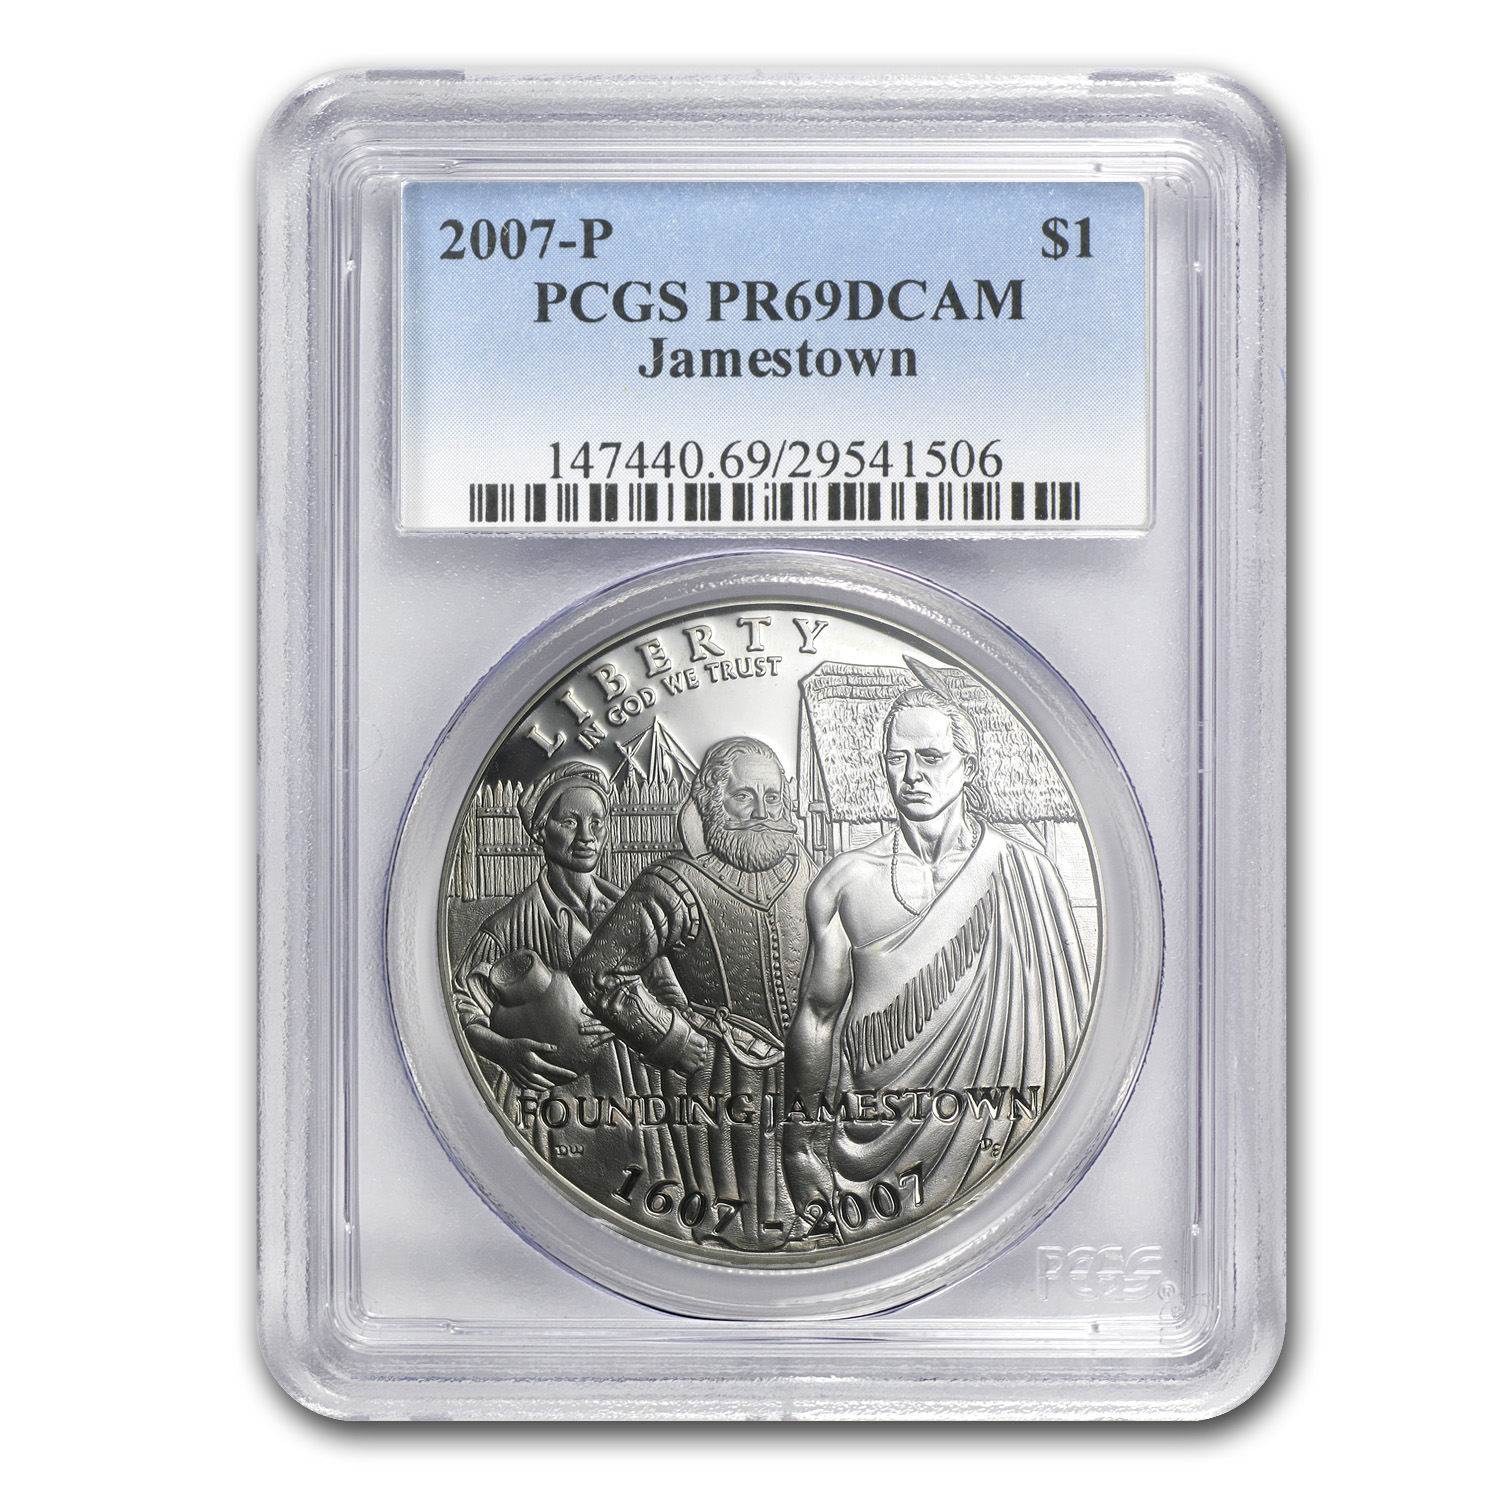 2007-P Jamestown 400th Anniv $1 Silver Commem PR-69 PCGS